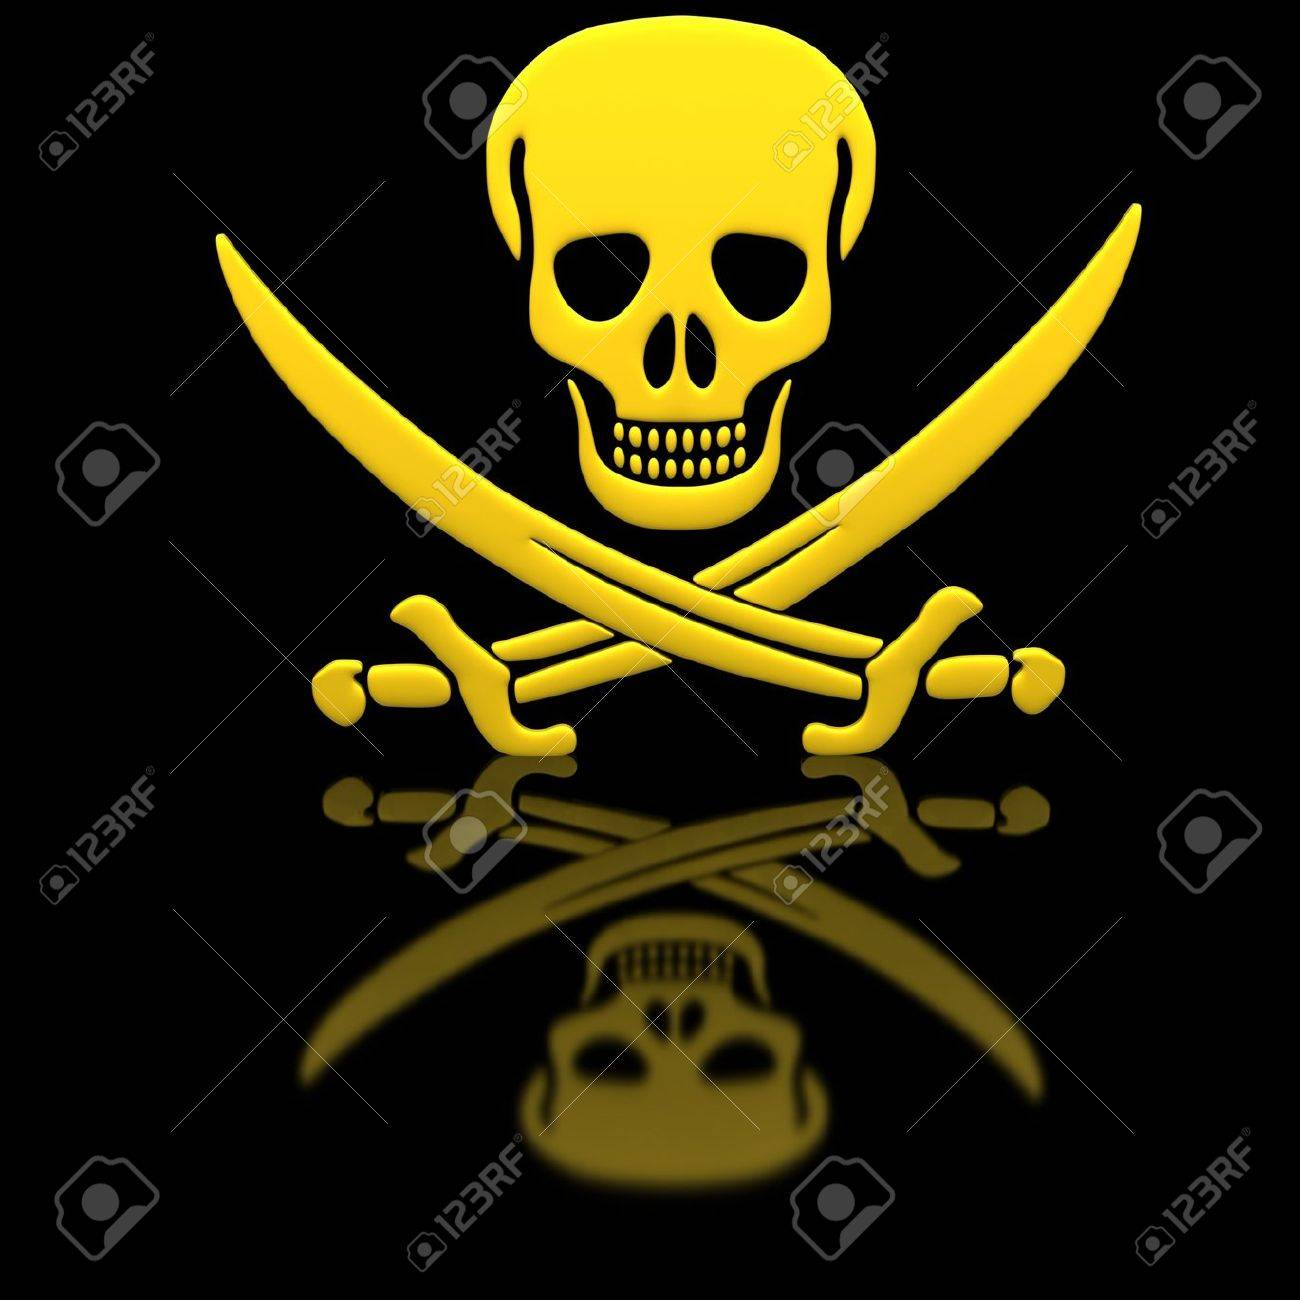 Yellow Jolly Roger skull and swords on the glossy surface. Stock Photo - 12028443